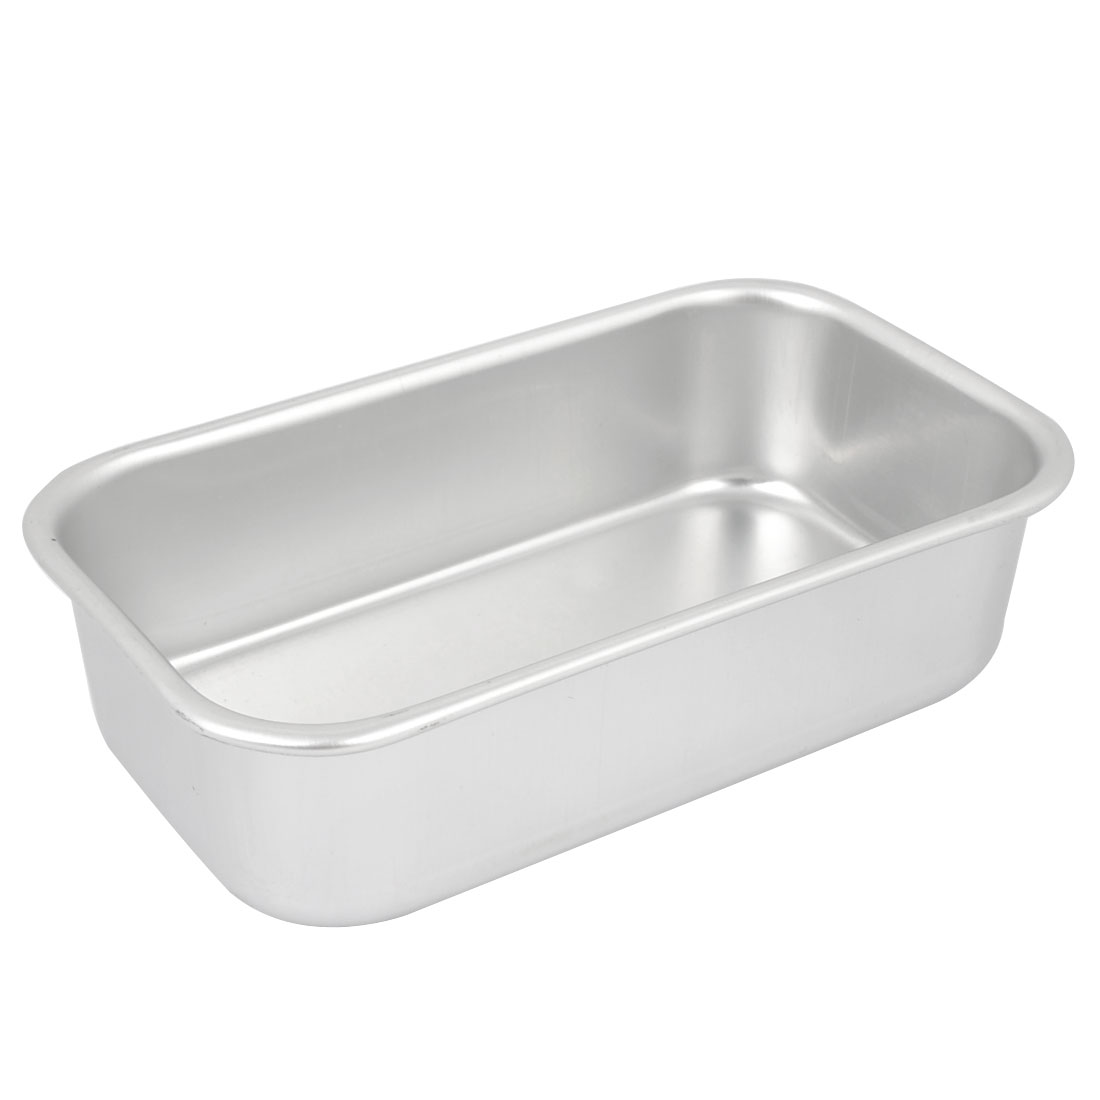 "Baking Rectangle Aluminium Alloy Bottom Cake Mold Mould Pot 4.3""x2.4""x1.2"""